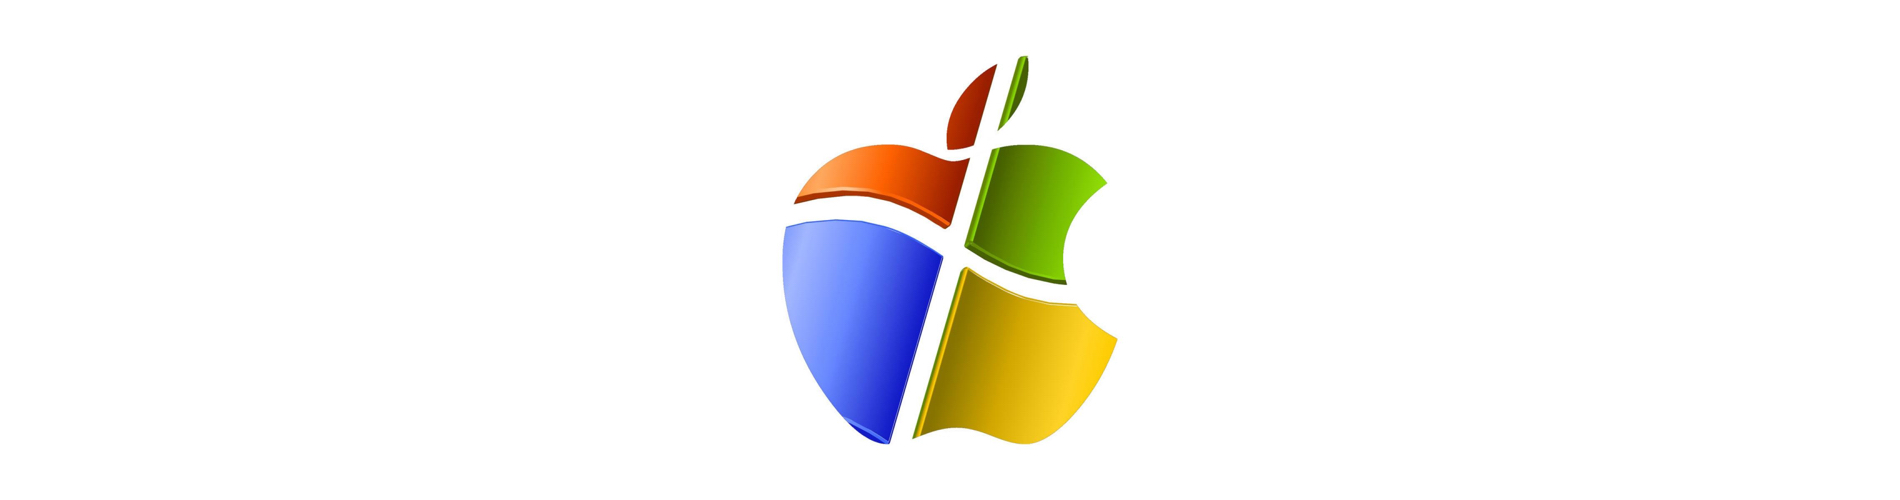 Running Windows on Apple Mac OSX feature image